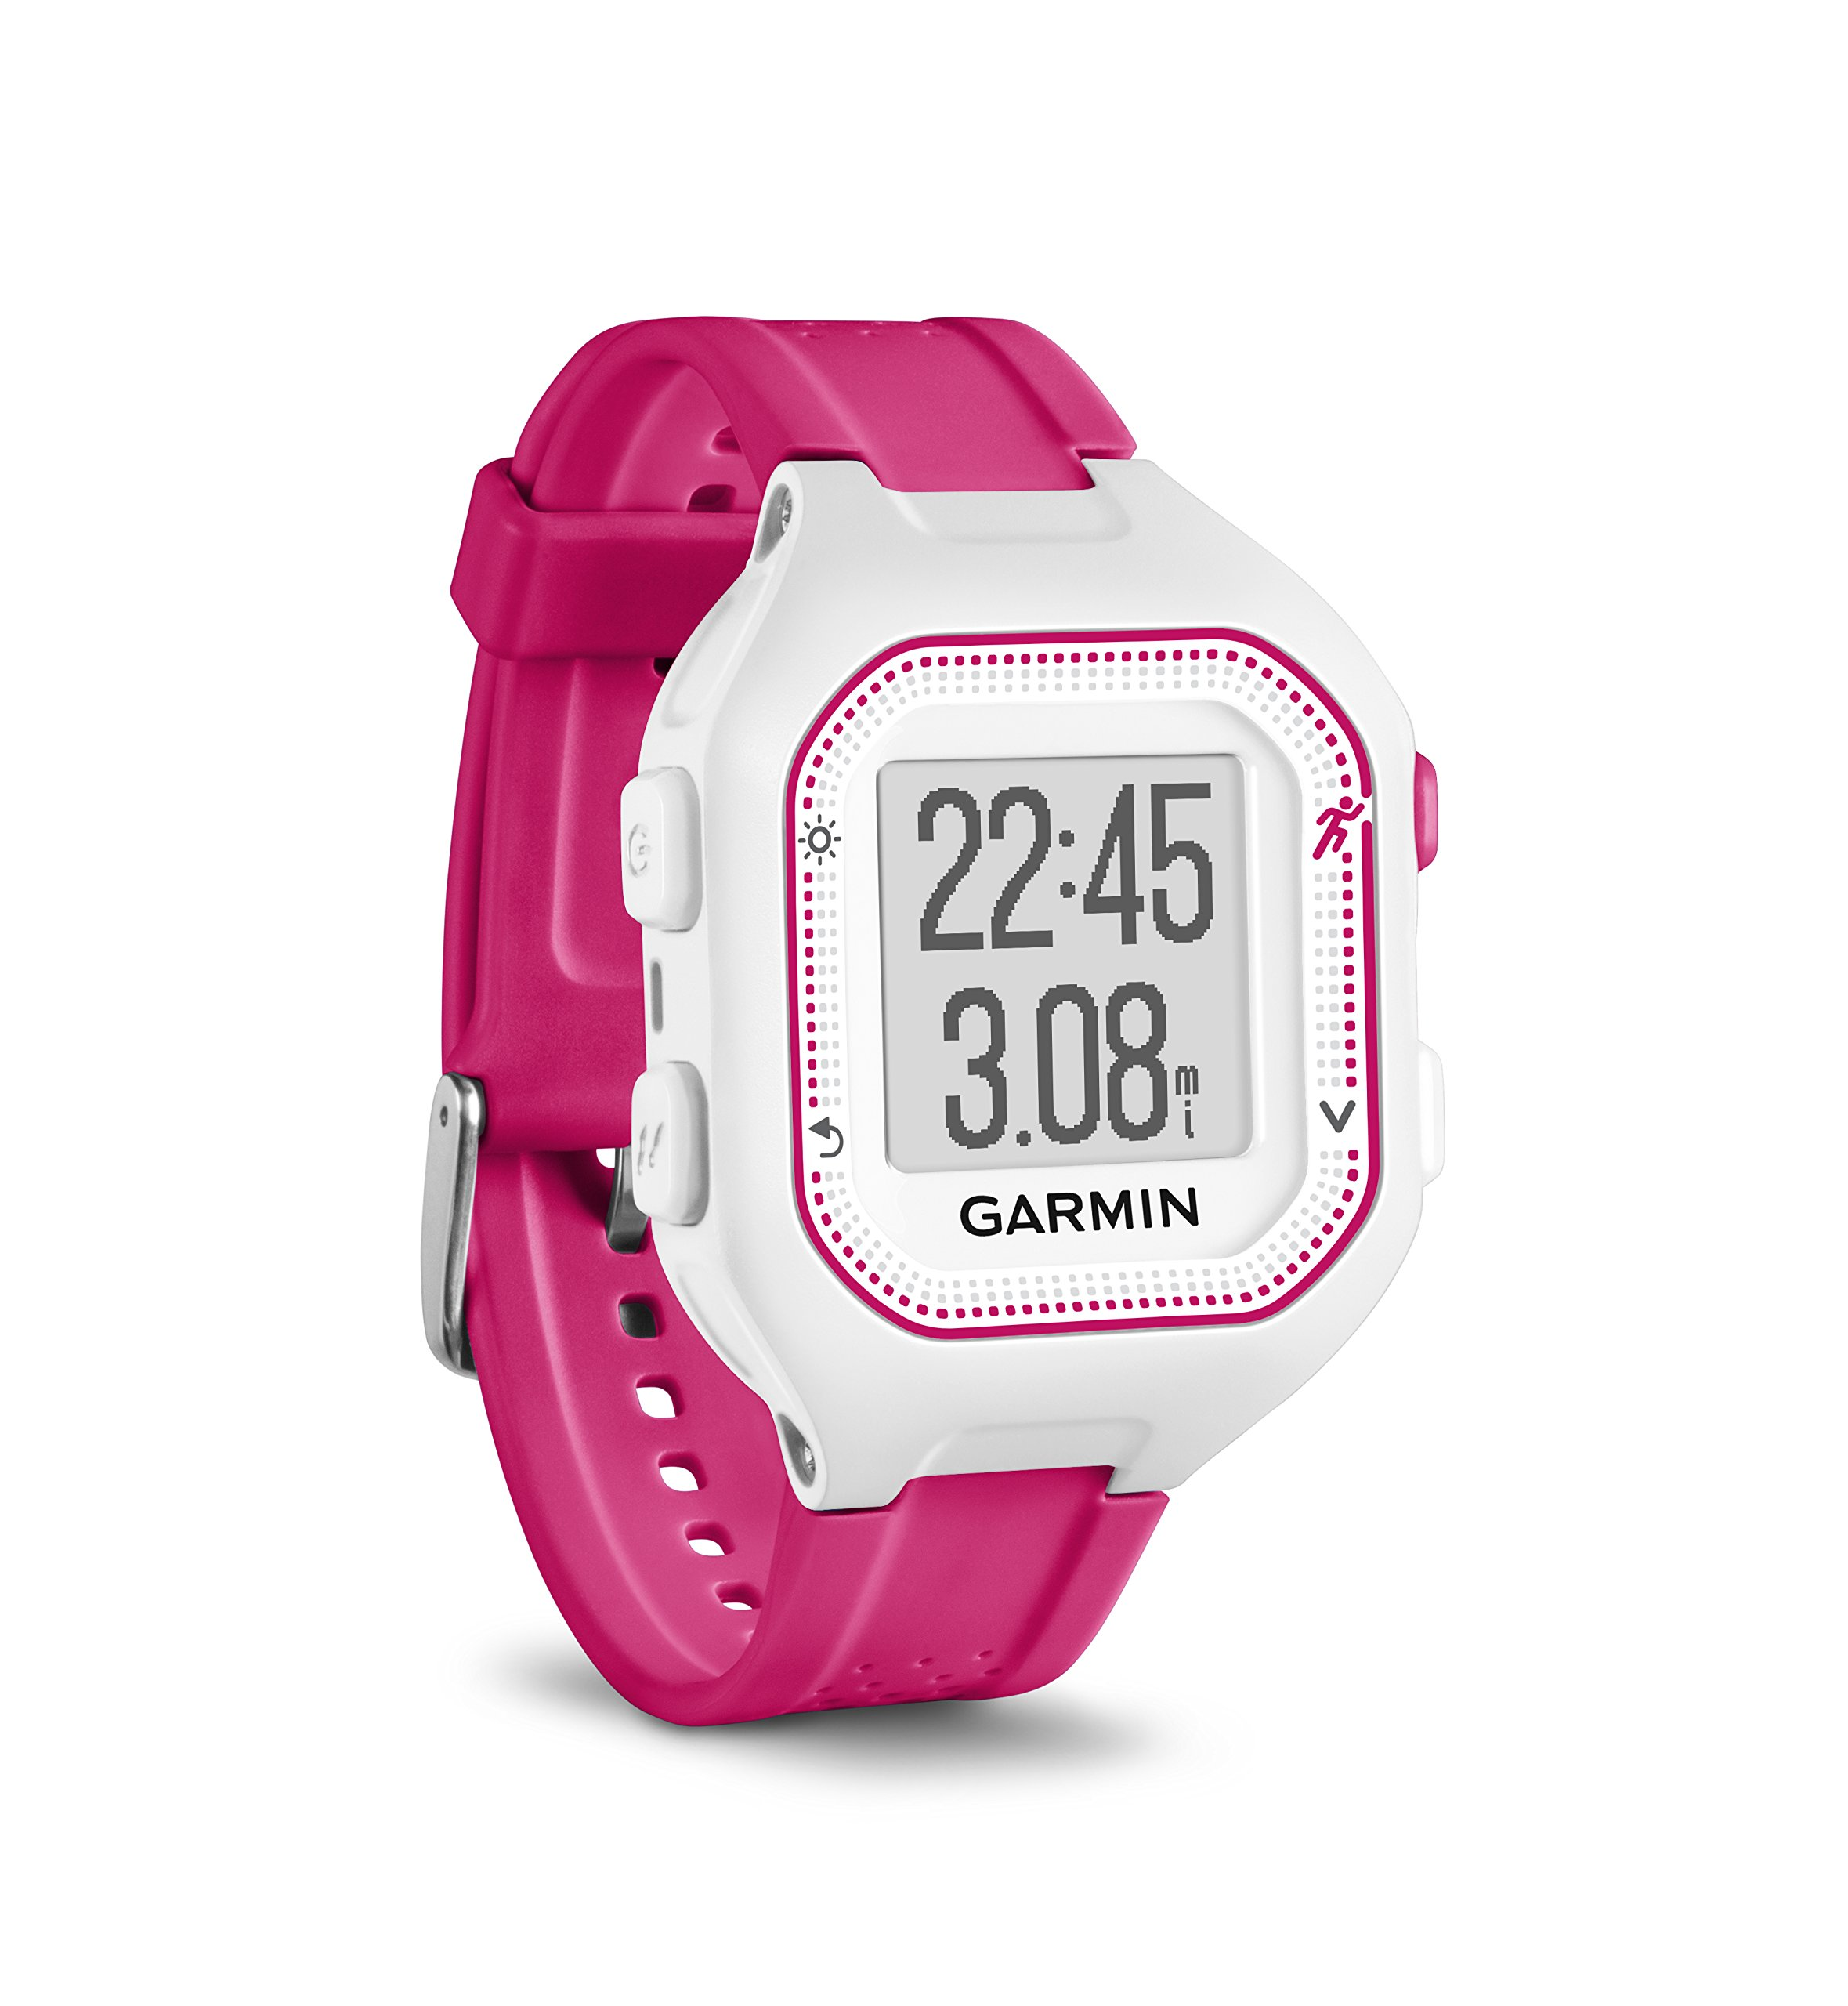 Garmin Forerunner 25, Small - White and Pink by Garmin